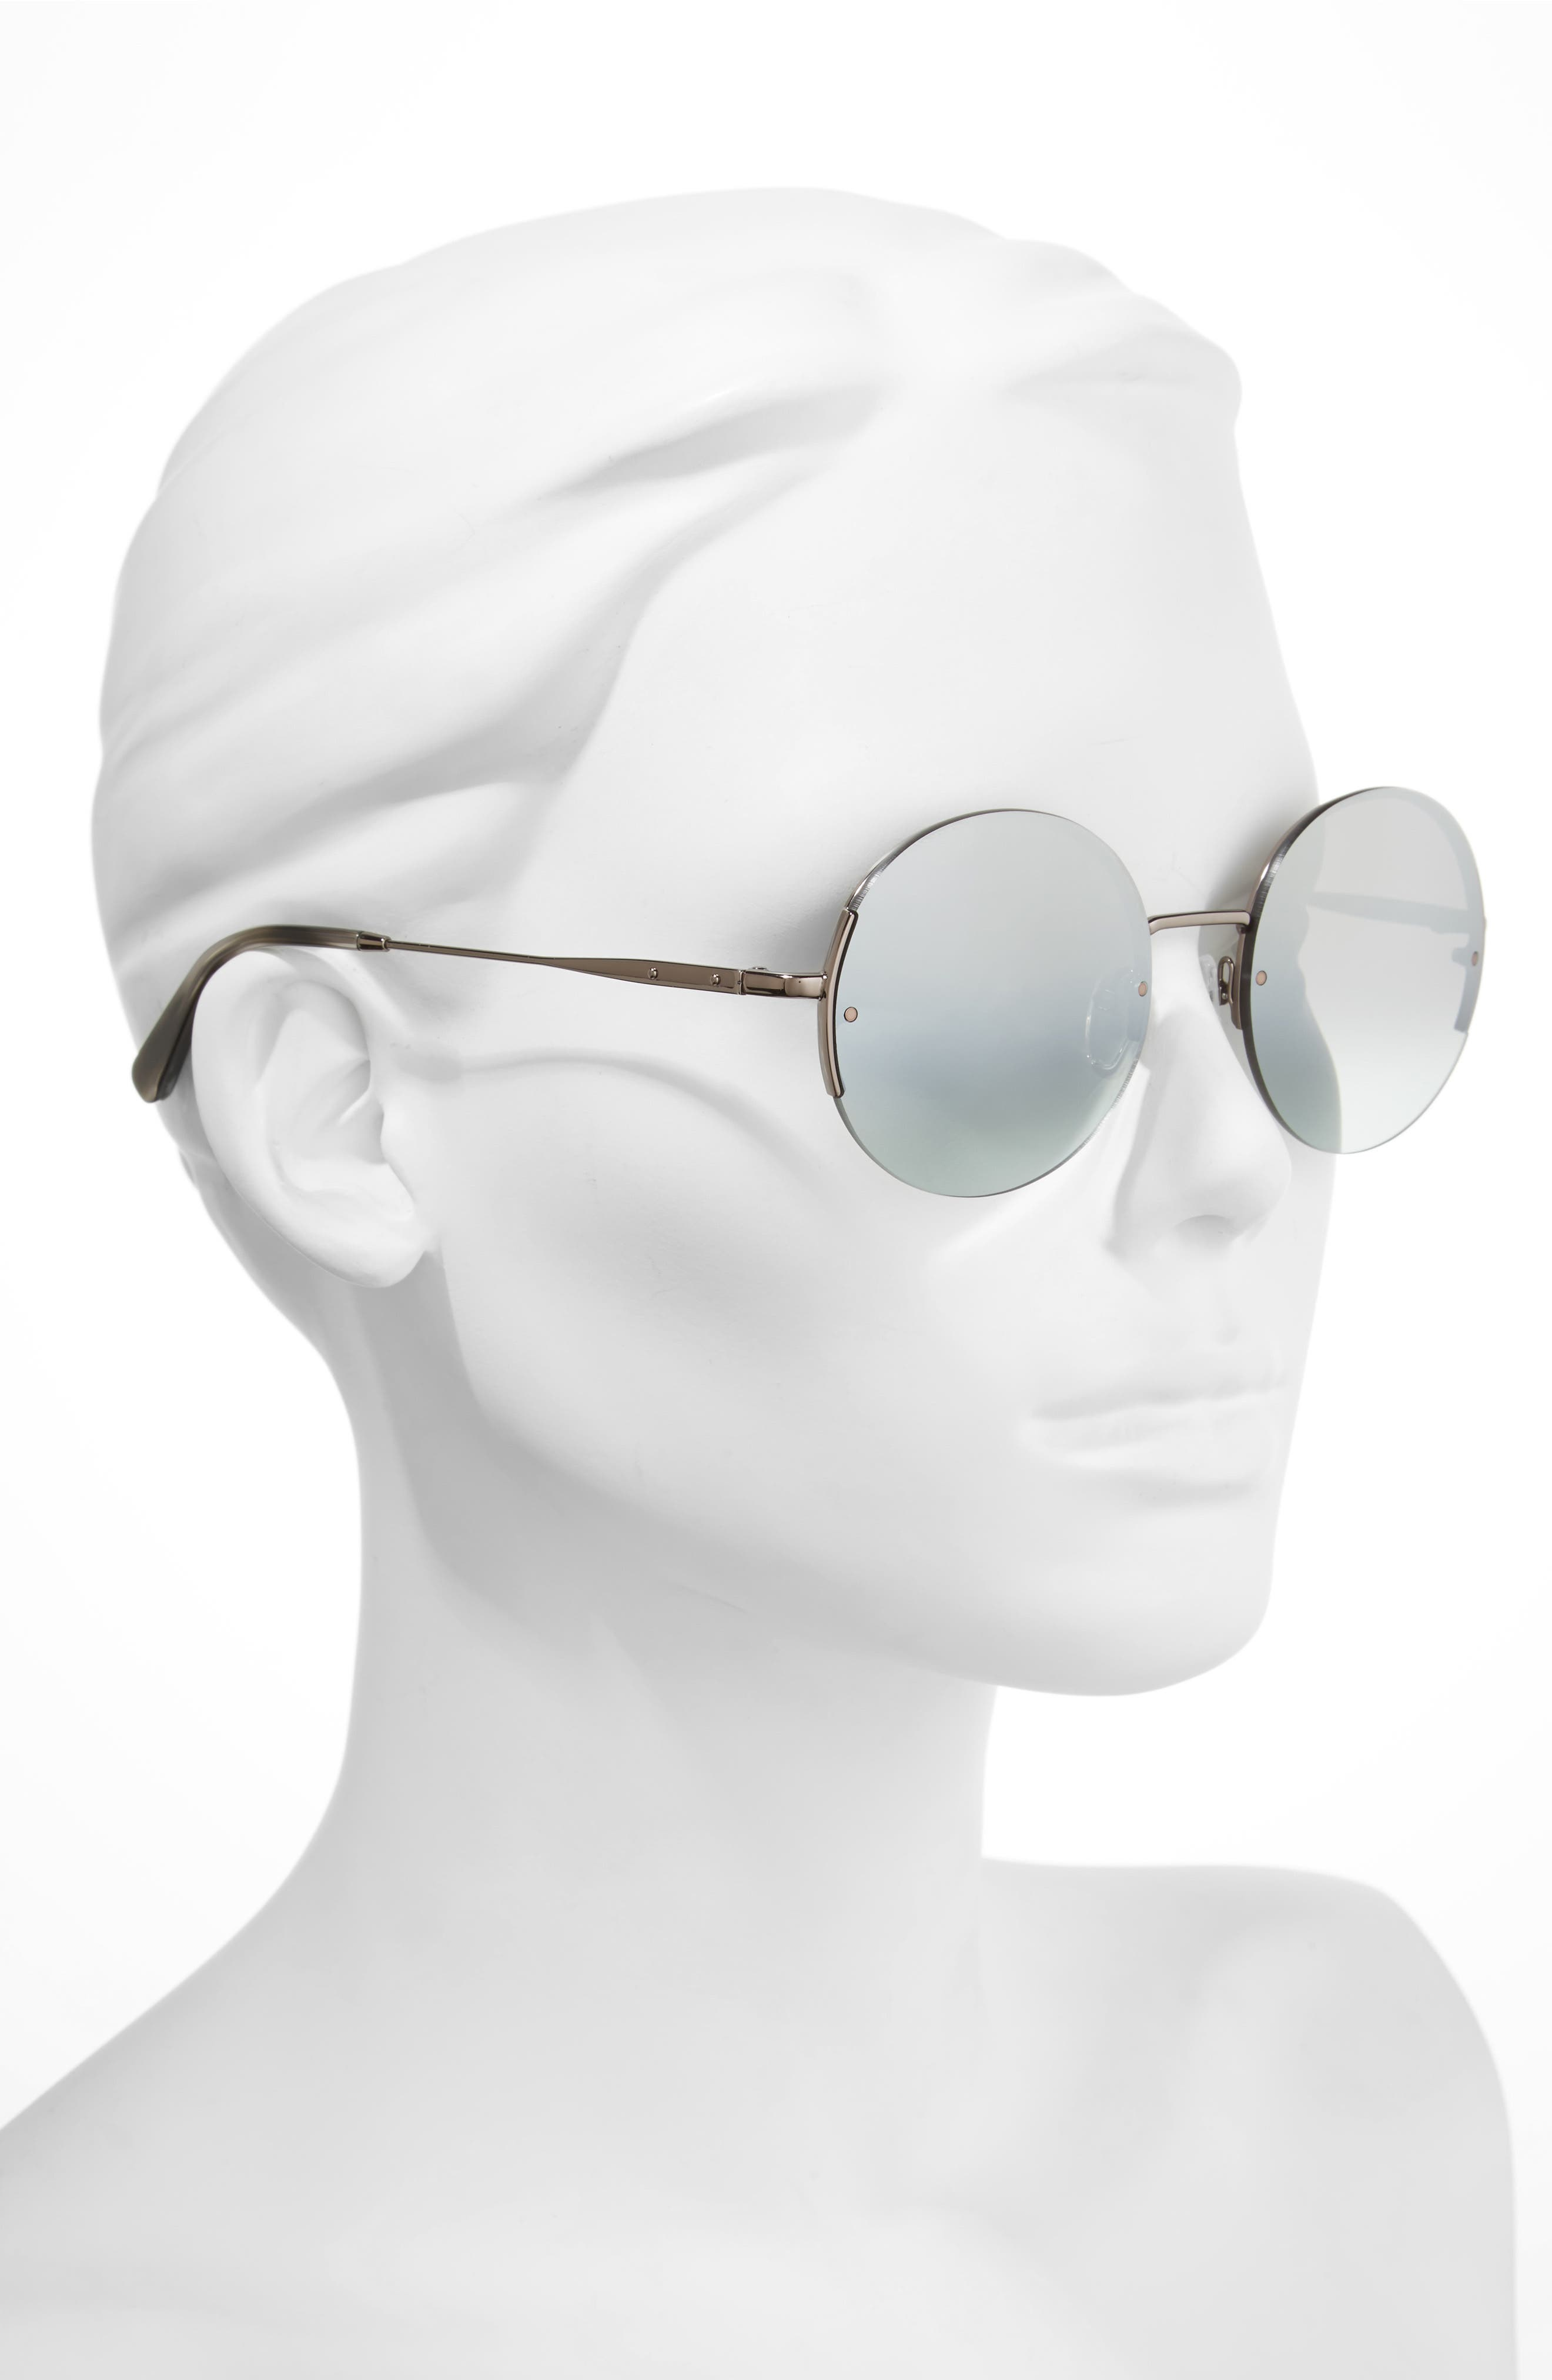 55mm Round Sunglasses,                             Alternate thumbnail 2, color,                             040